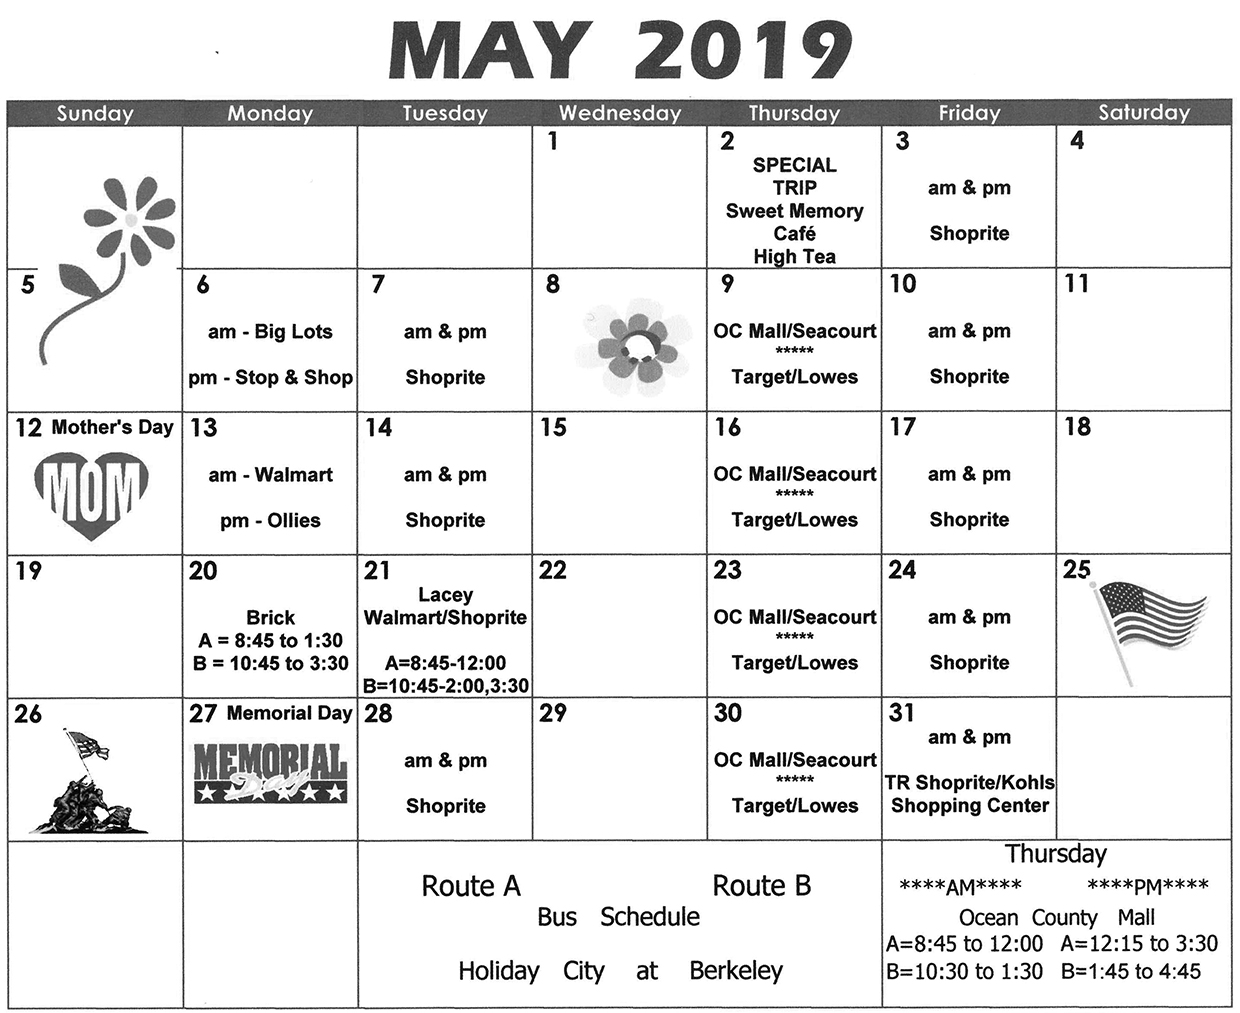 Bus Schedule - May 2019